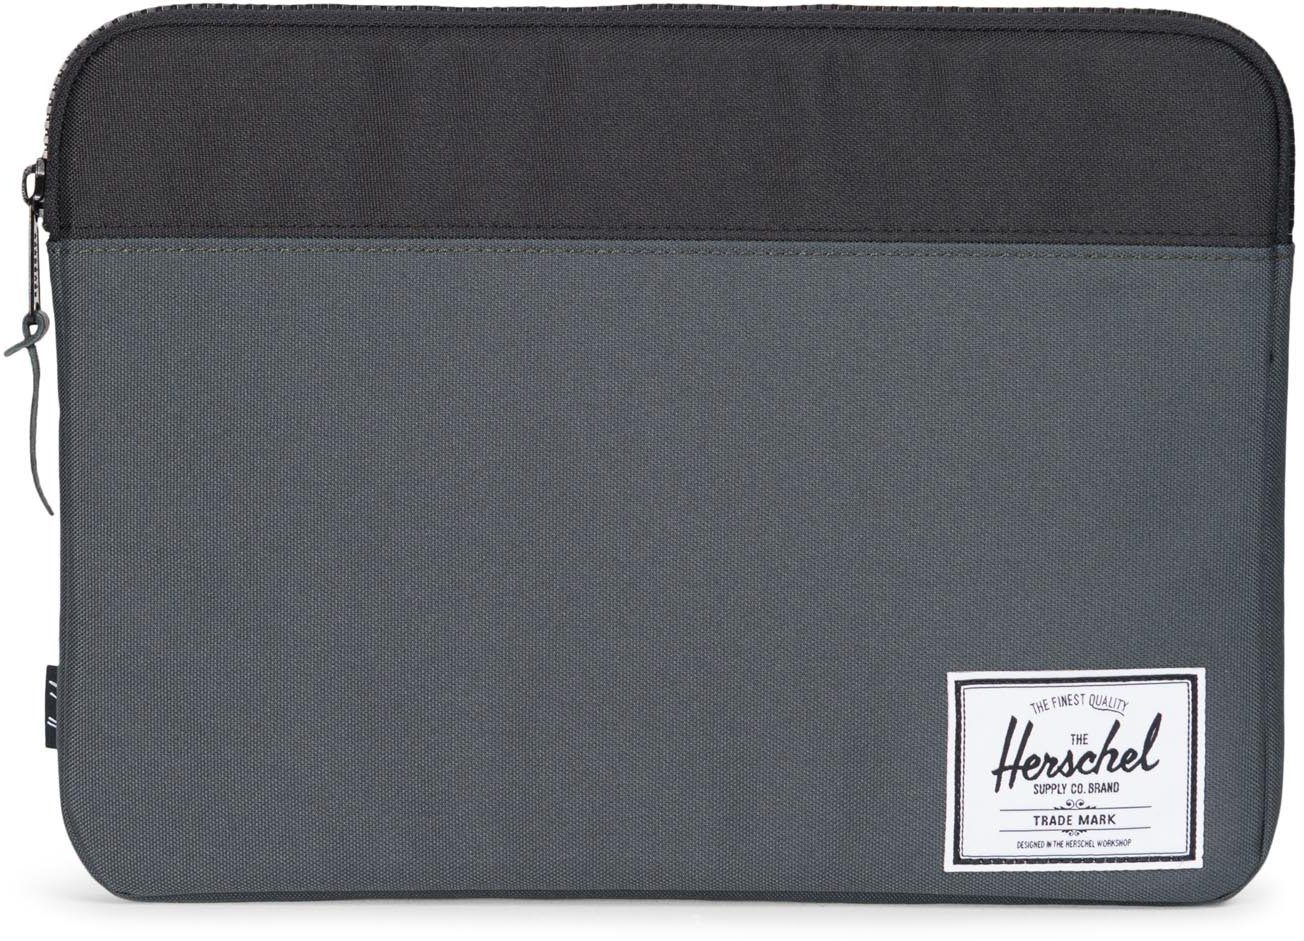 Herschel Notebook Hülle, »Anchor Sleeve, Macbook 13, Macbook Air/Pro, DarkShadow«